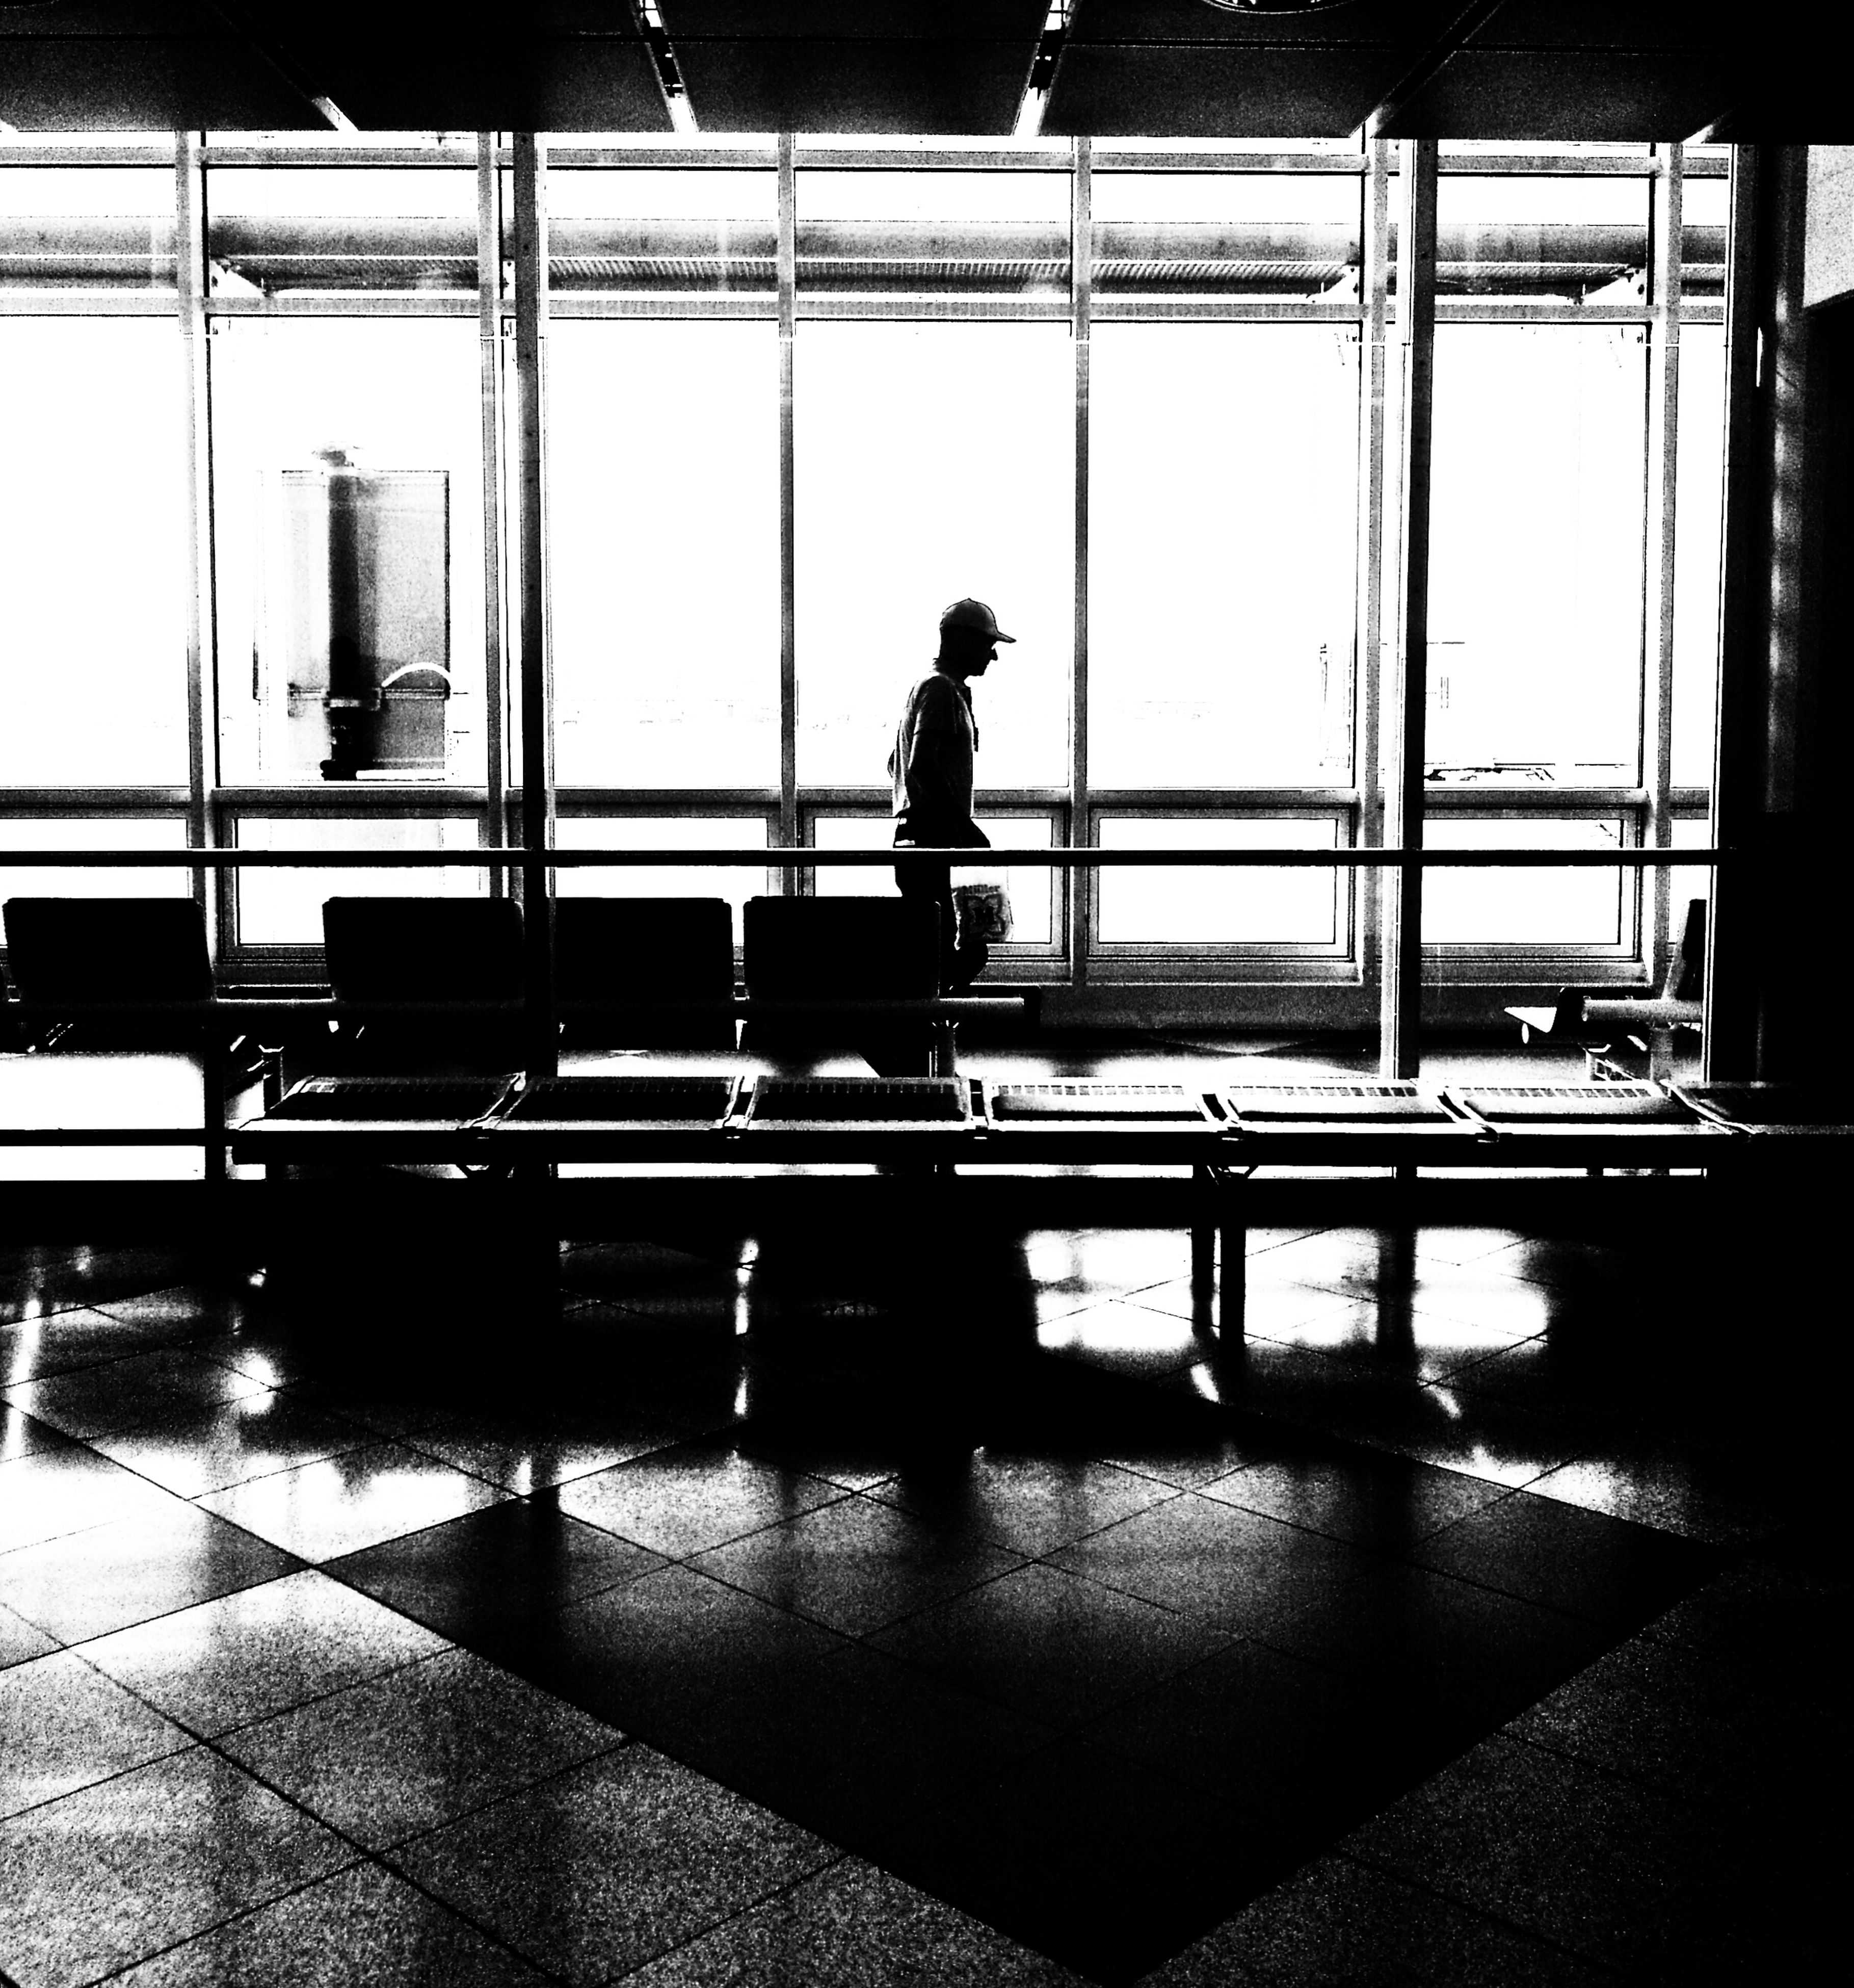 indoors, men, reflection, silhouette, built structure, architecture, window, full length, transportation, lifestyles, glass - material, person, transparent, leisure activity, standing, travel, mode of transport, city life